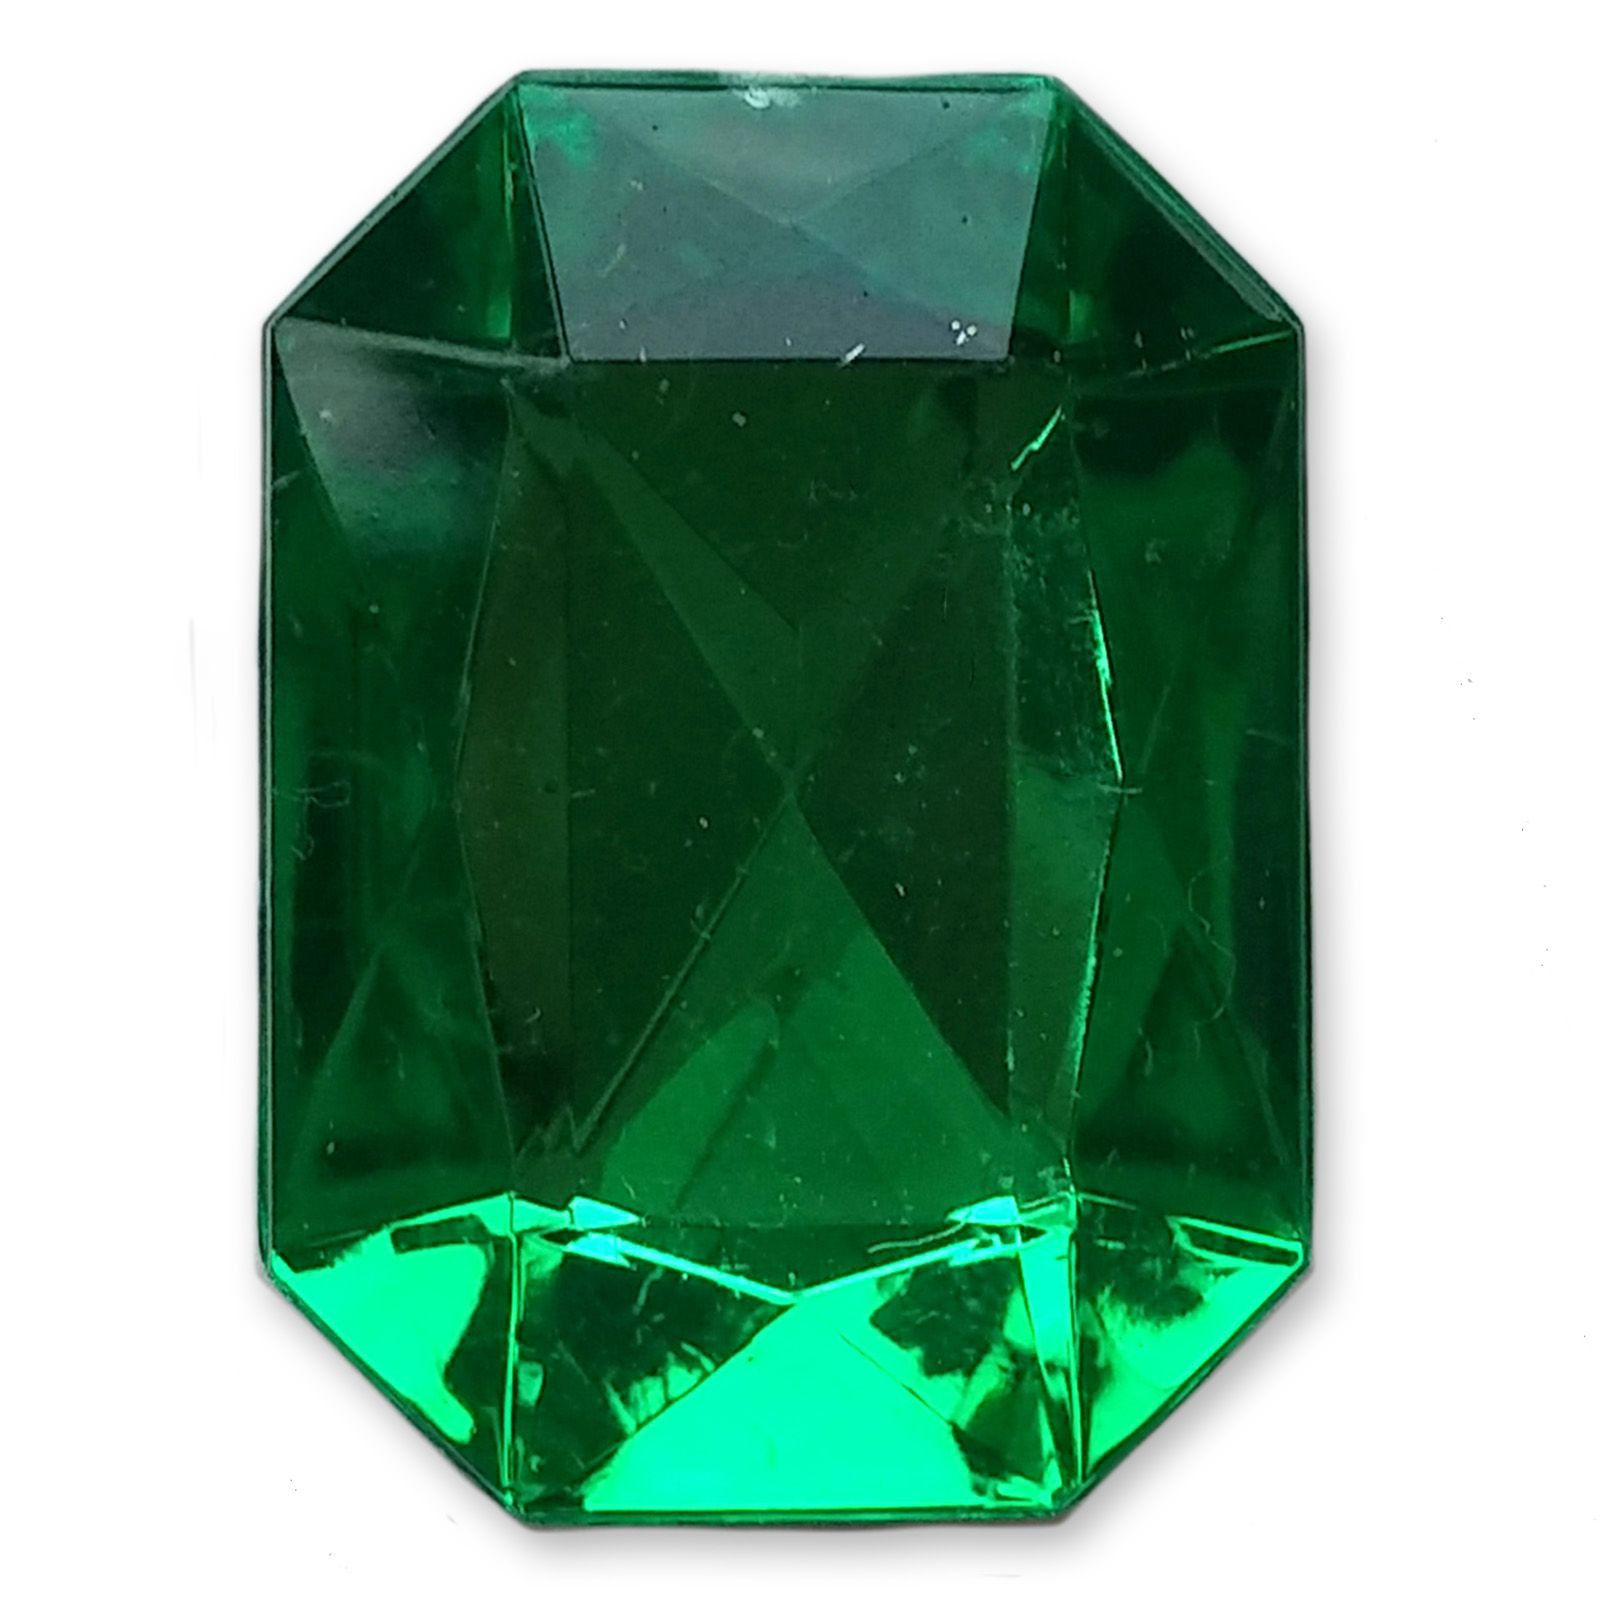 p emerald asp acrylic embellishments shape green gem x